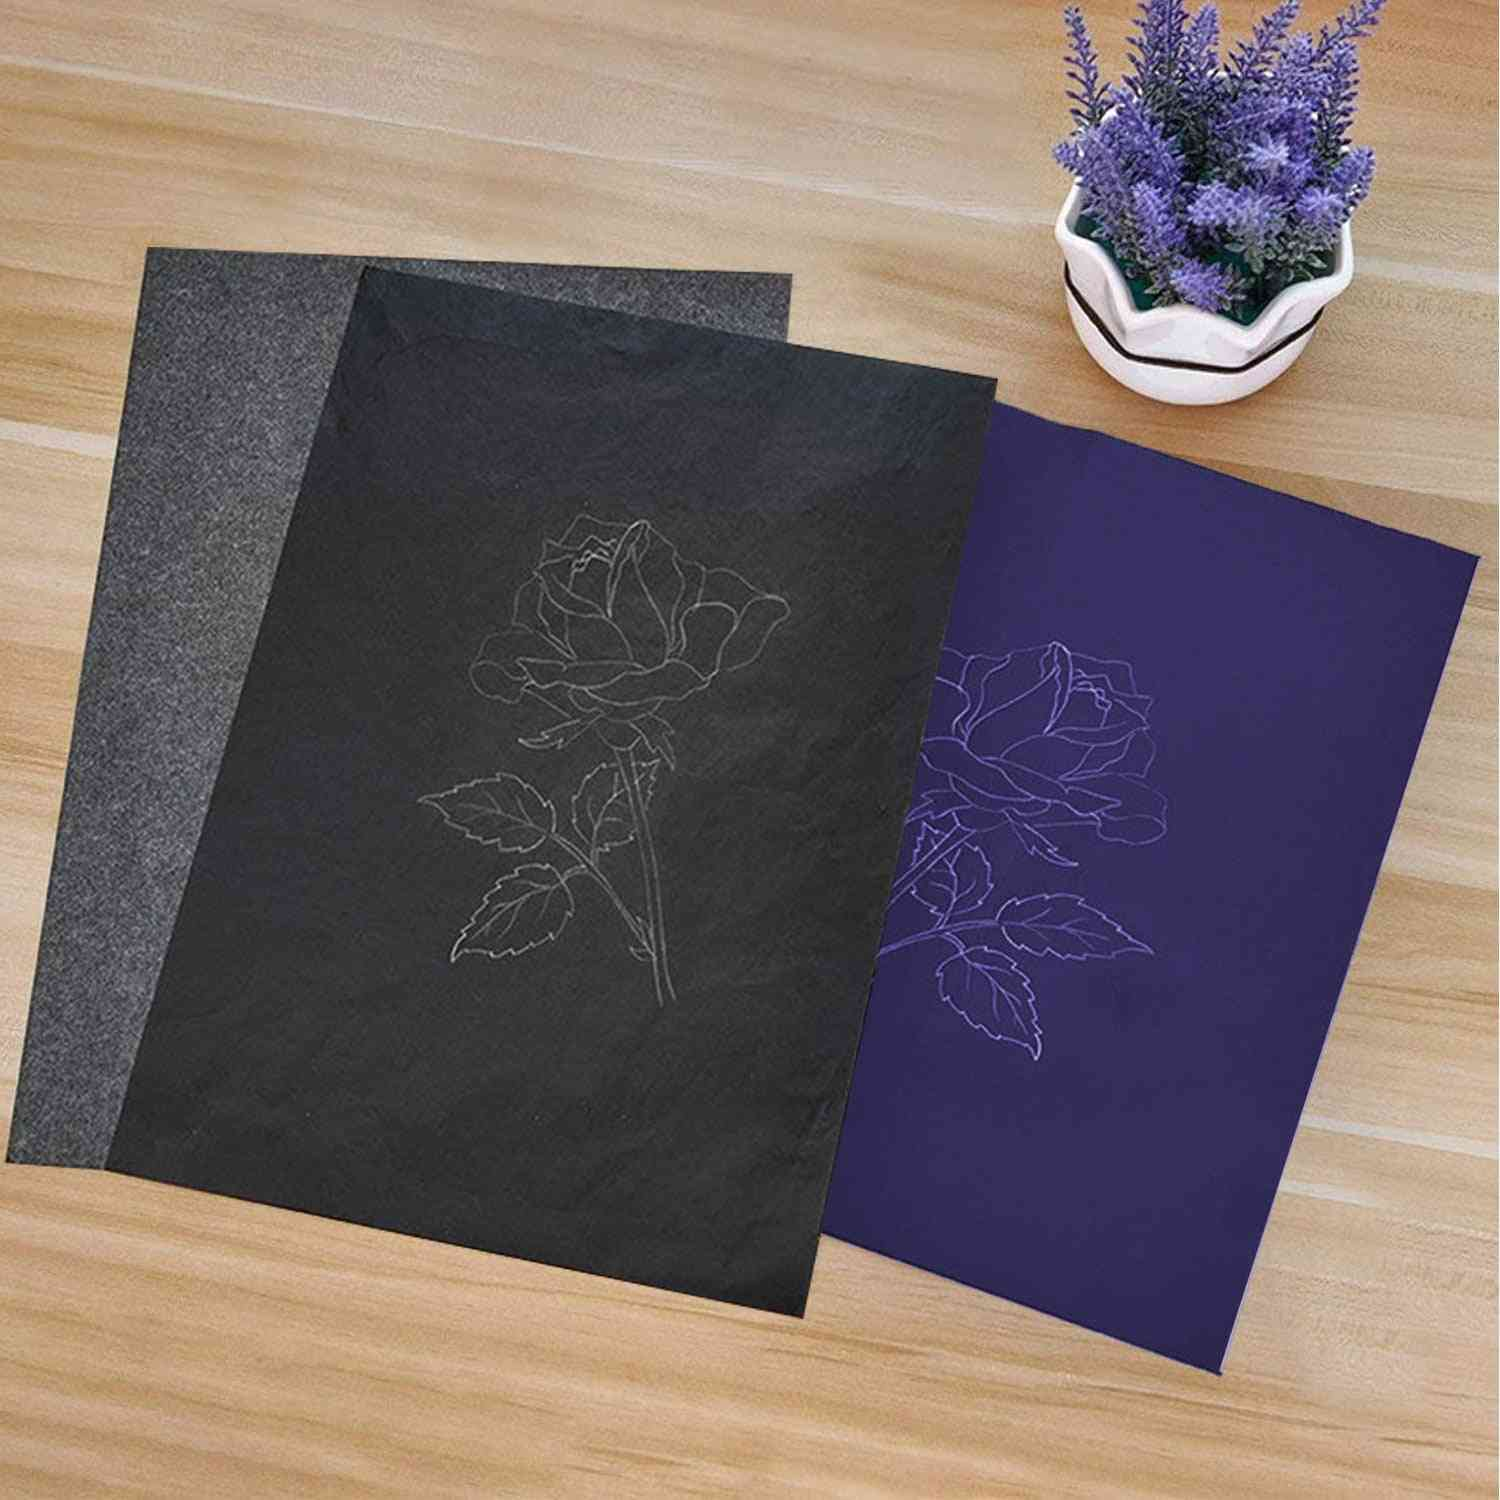 A4 Size Reusable Carbon Tracing Transfer Paper For Office School Home Canvas Wood Glass Metal Ceramic